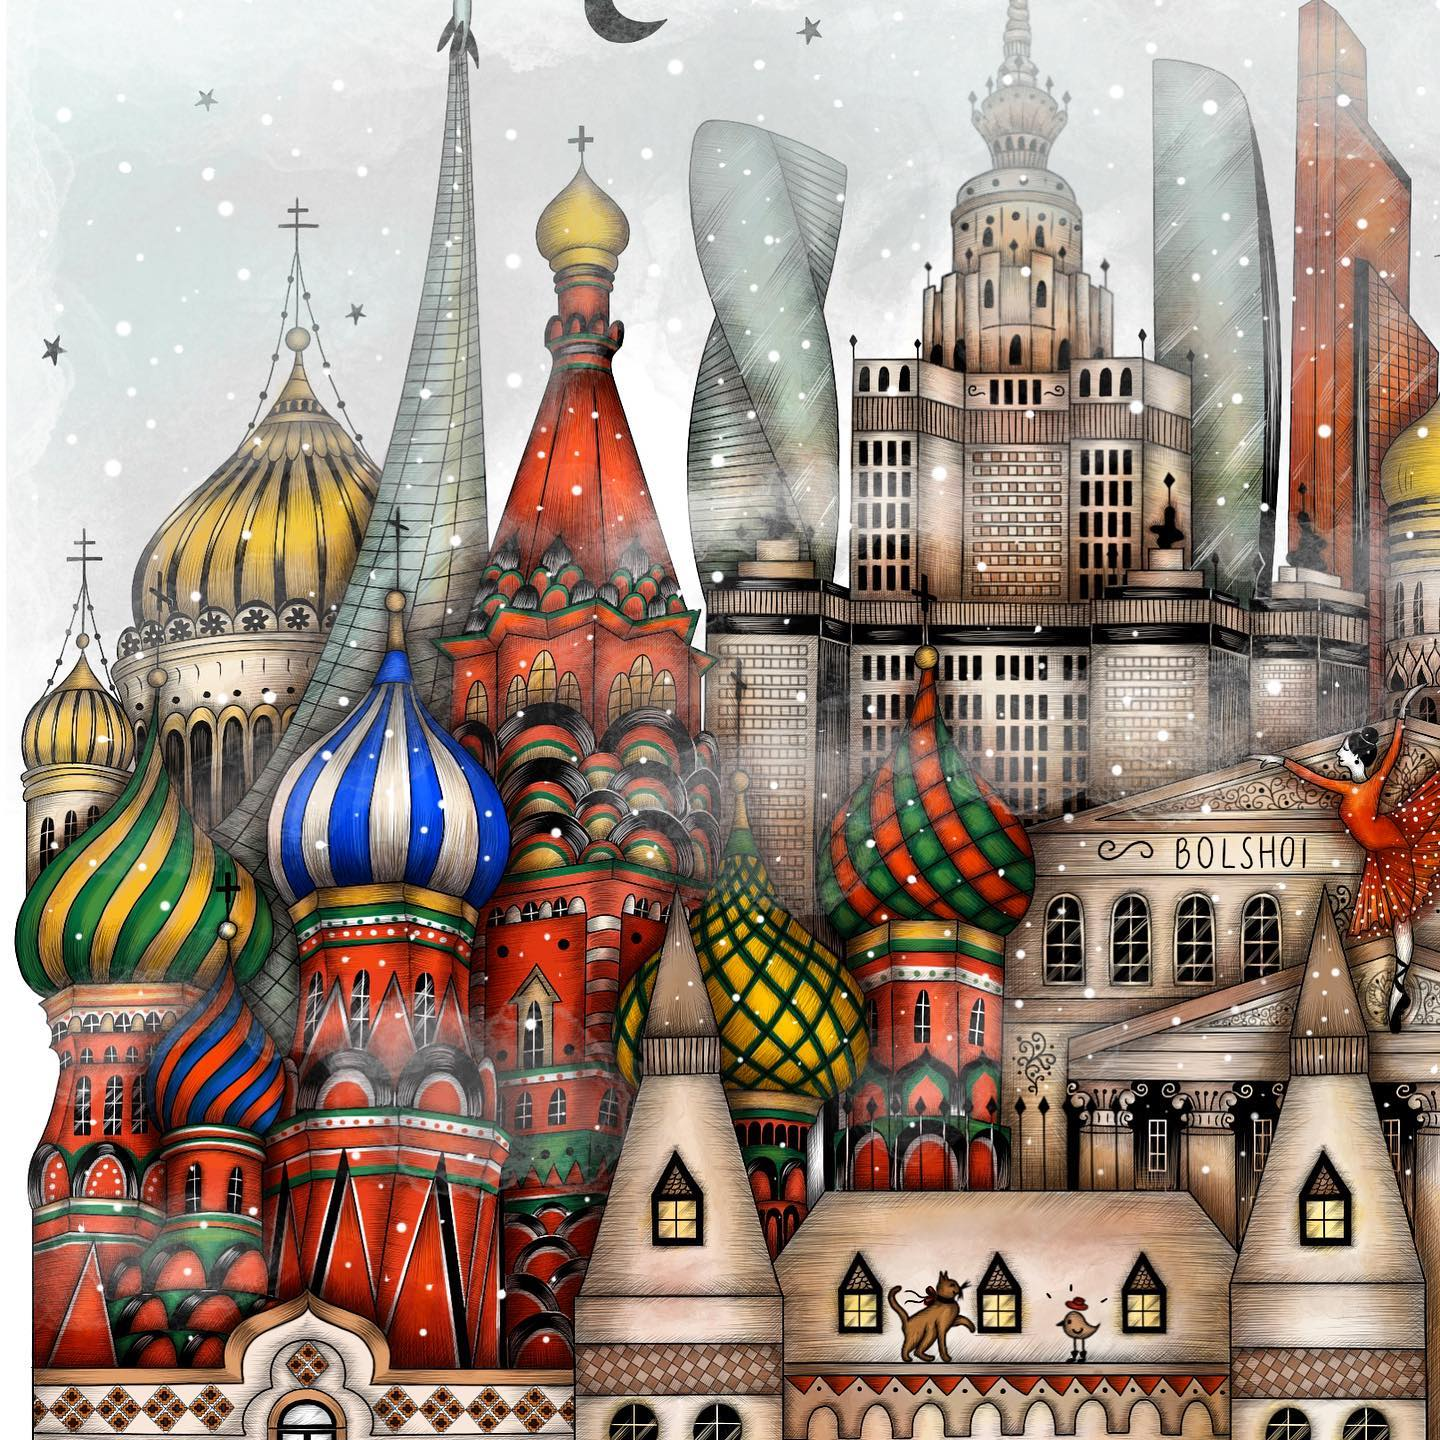 "Instagram post: Moscow sneak peek on a snowy day. ♥️❄️ Colorful churches, golden domes and foggy skyscrapers, standing still under the whistling wind...I am almost done with ""Midnight in Moscow"" and I wanted to share this detail of Saint Basil's Cathedral ✨ Hope you like it! I will post the full illustration tomorrow here and in my shop, so stay tuned. Happy Tuesday everyone! ⭐️🌈 • • • #madalinadraws #madalinatantareanu #moscowdrawing #midnightinmoscow #russia #russiaillustration #moscowillustration #postcardfrommoscow #stbasilscathedral #streetsofmoscow #art #artist #artwork #watercolor #ink #etsy #etsyartshop #etsyseller #idrawandtravel #procreate #ipadpro #russiancathedrals #poster #fineartprint #artistonetsy #illustratoroninstagram #madalinadrawscities #blackandwhite #coloringbook"